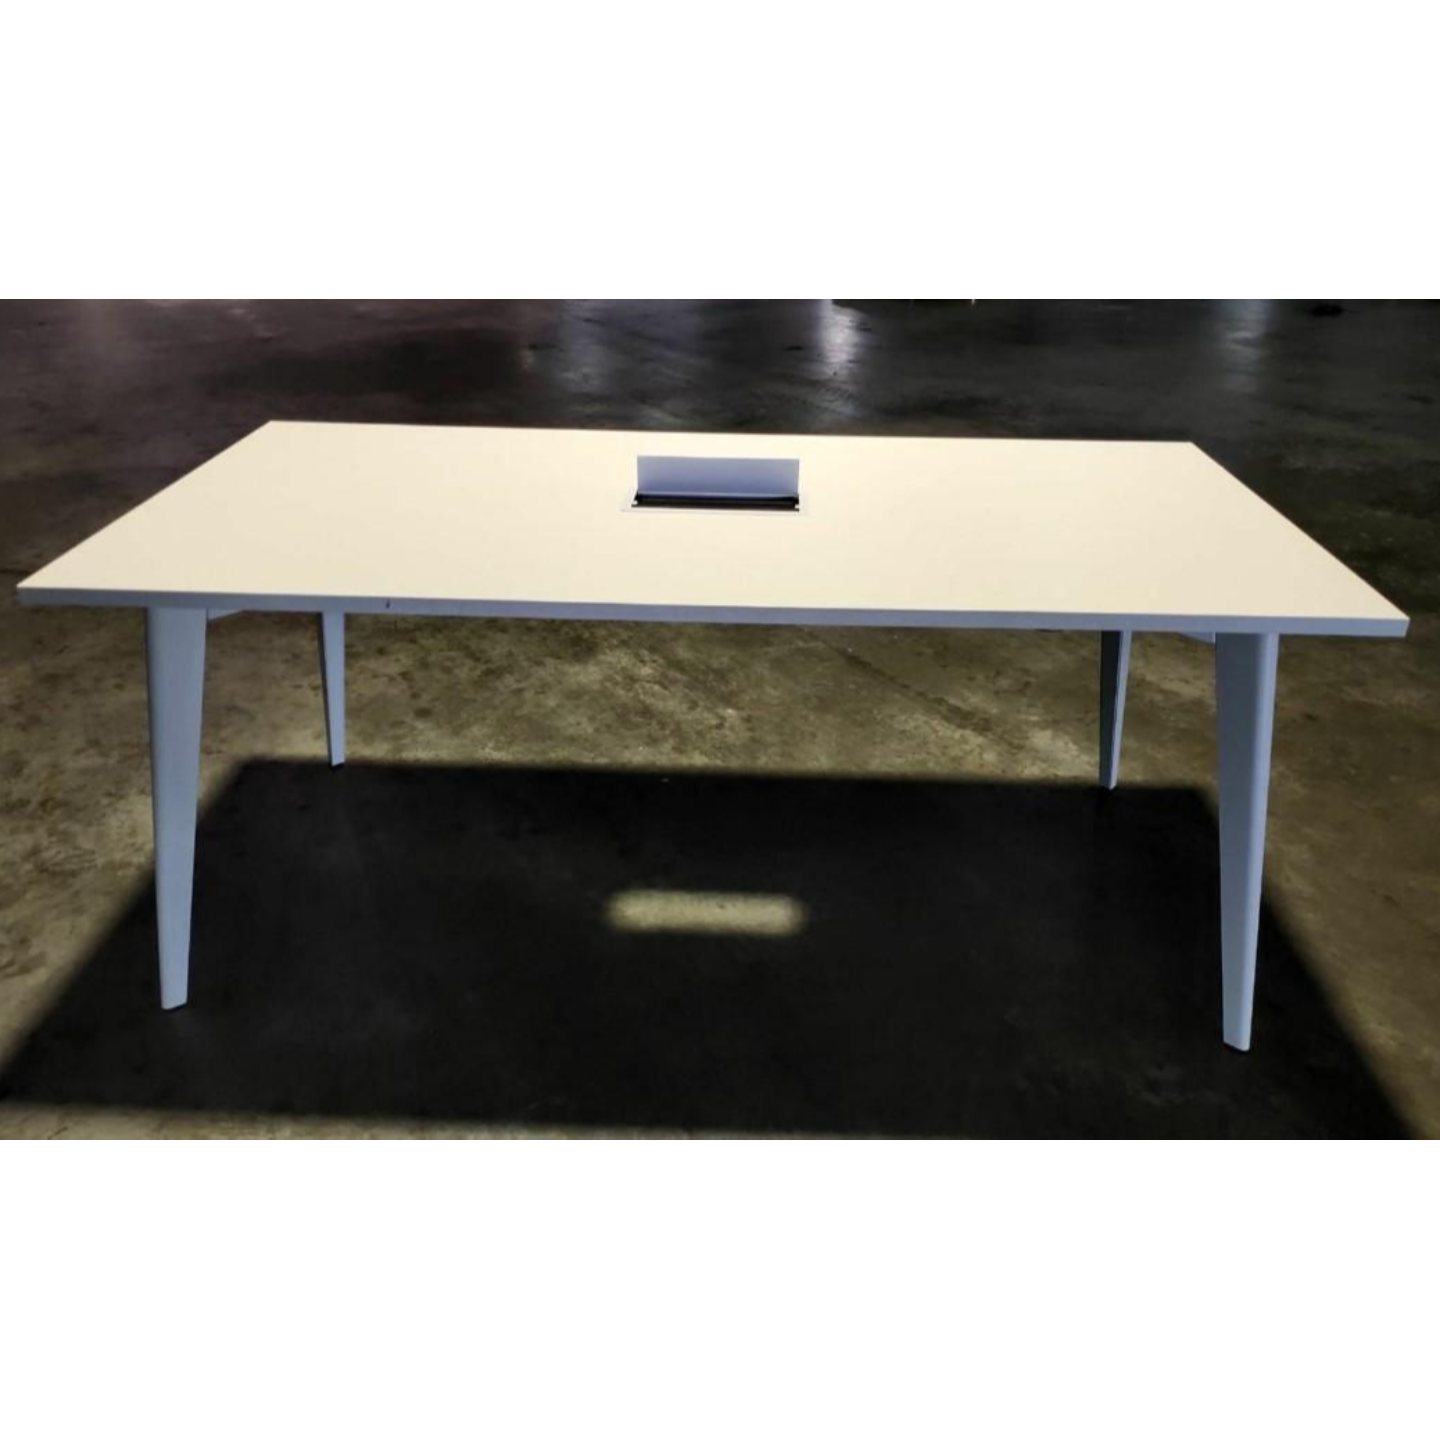 MEVIC Office/ Meeting Table